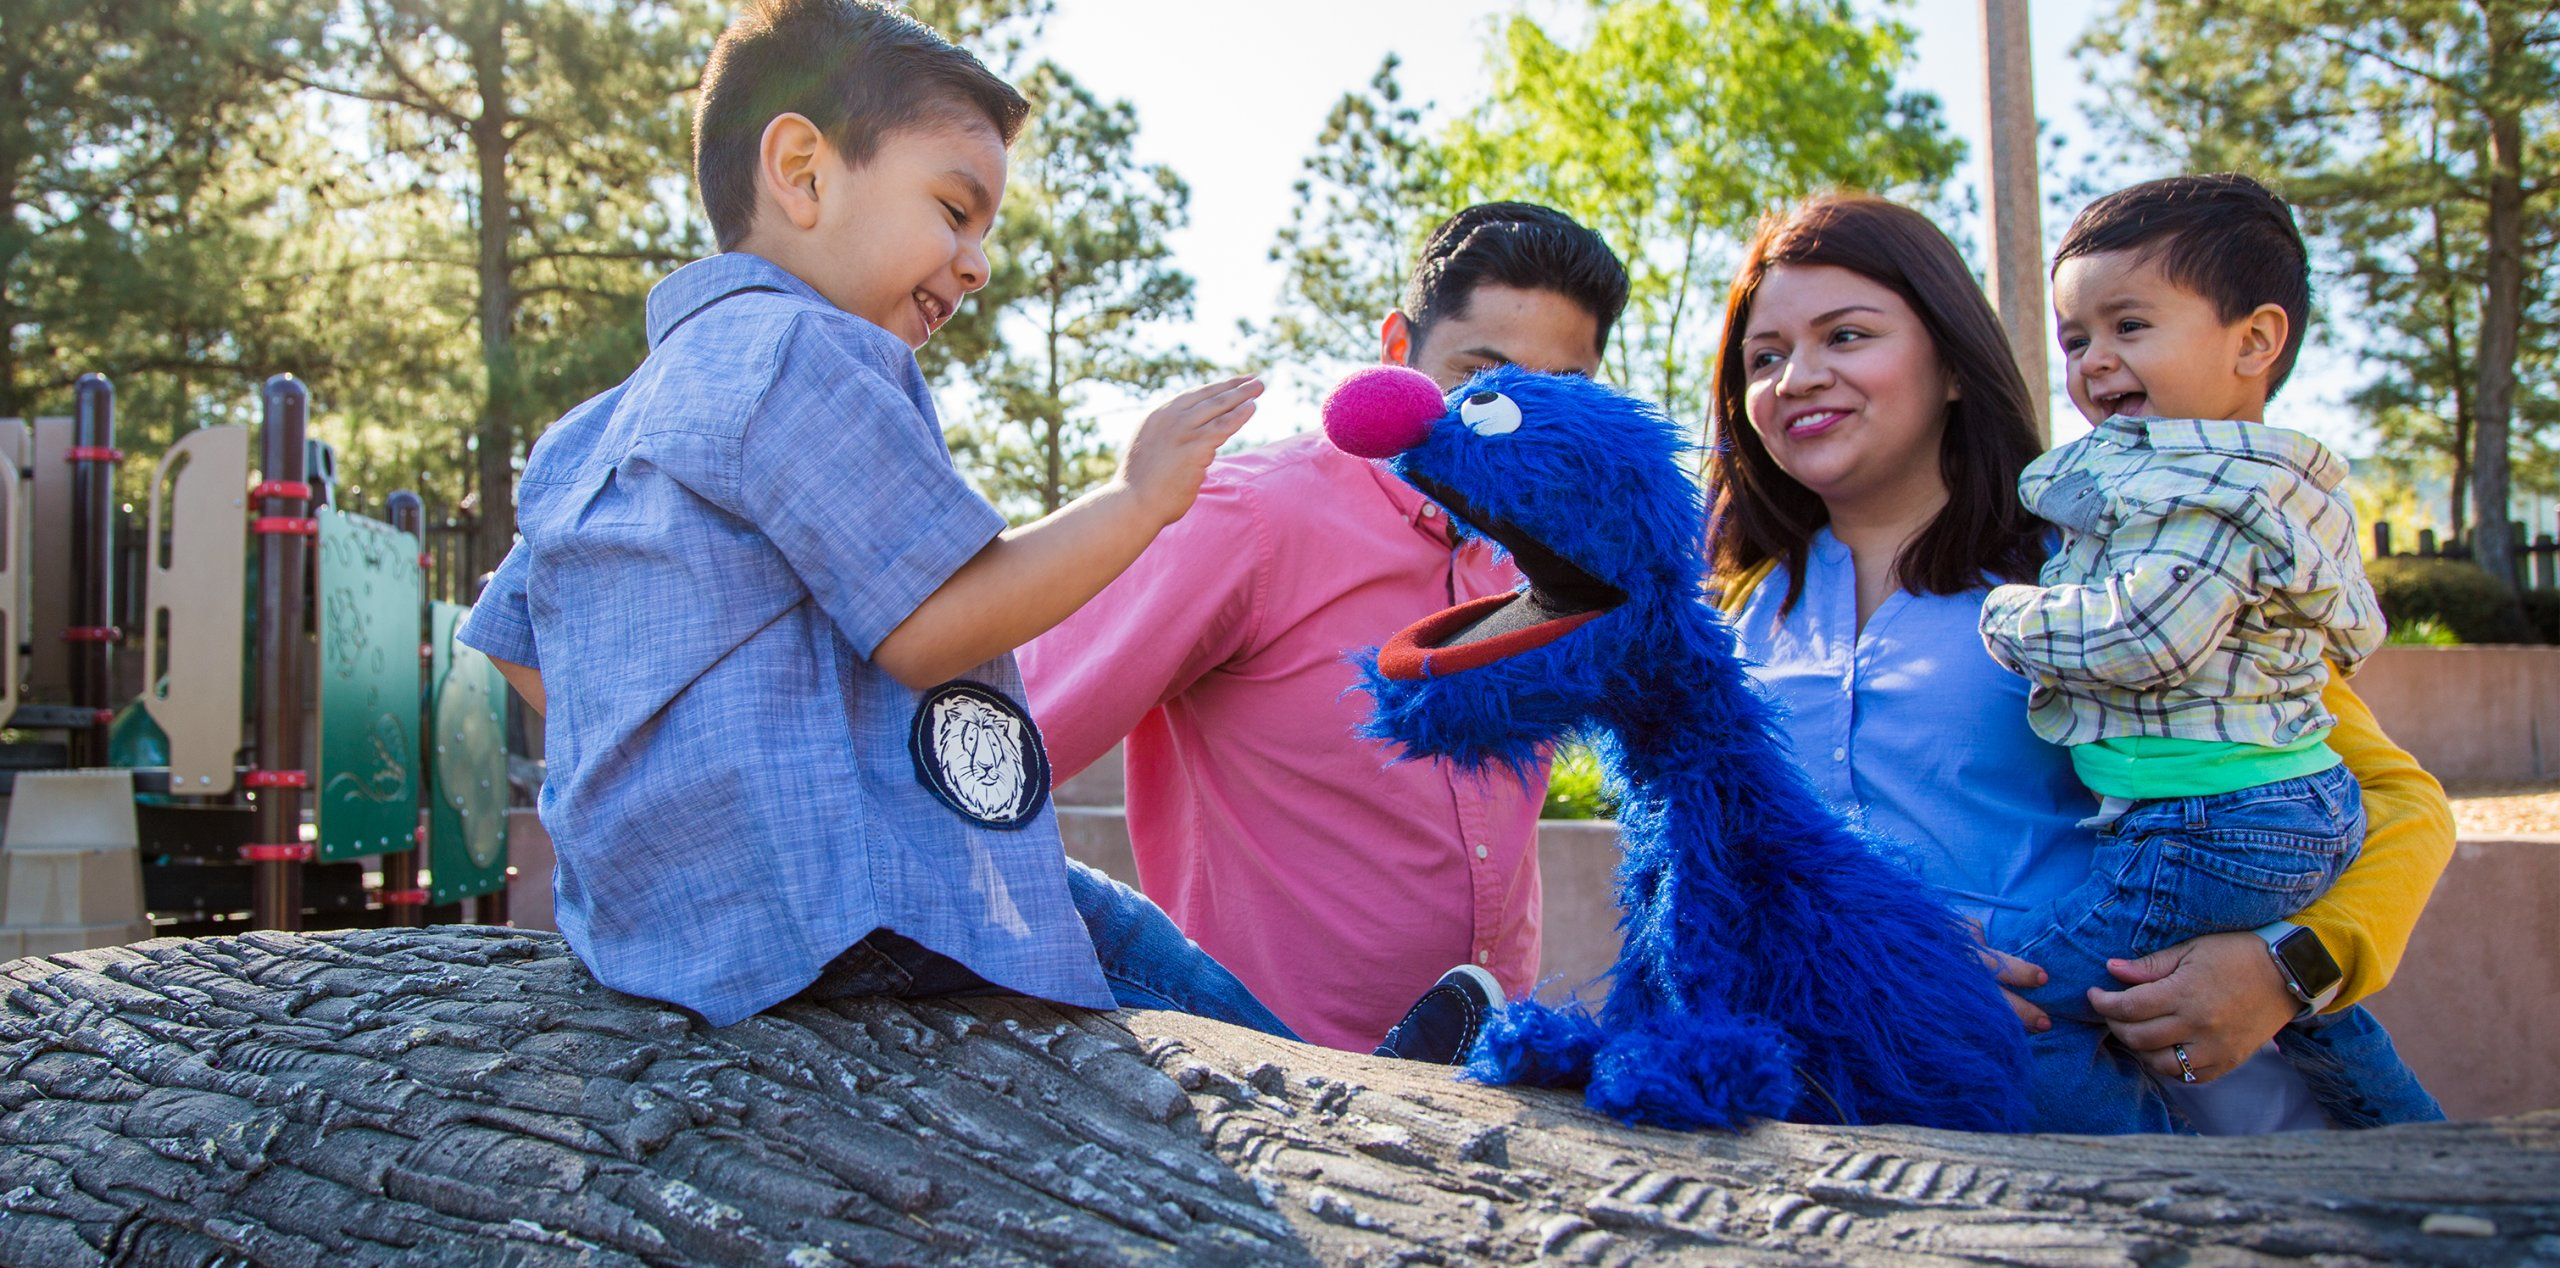 Boy smiling with Grover